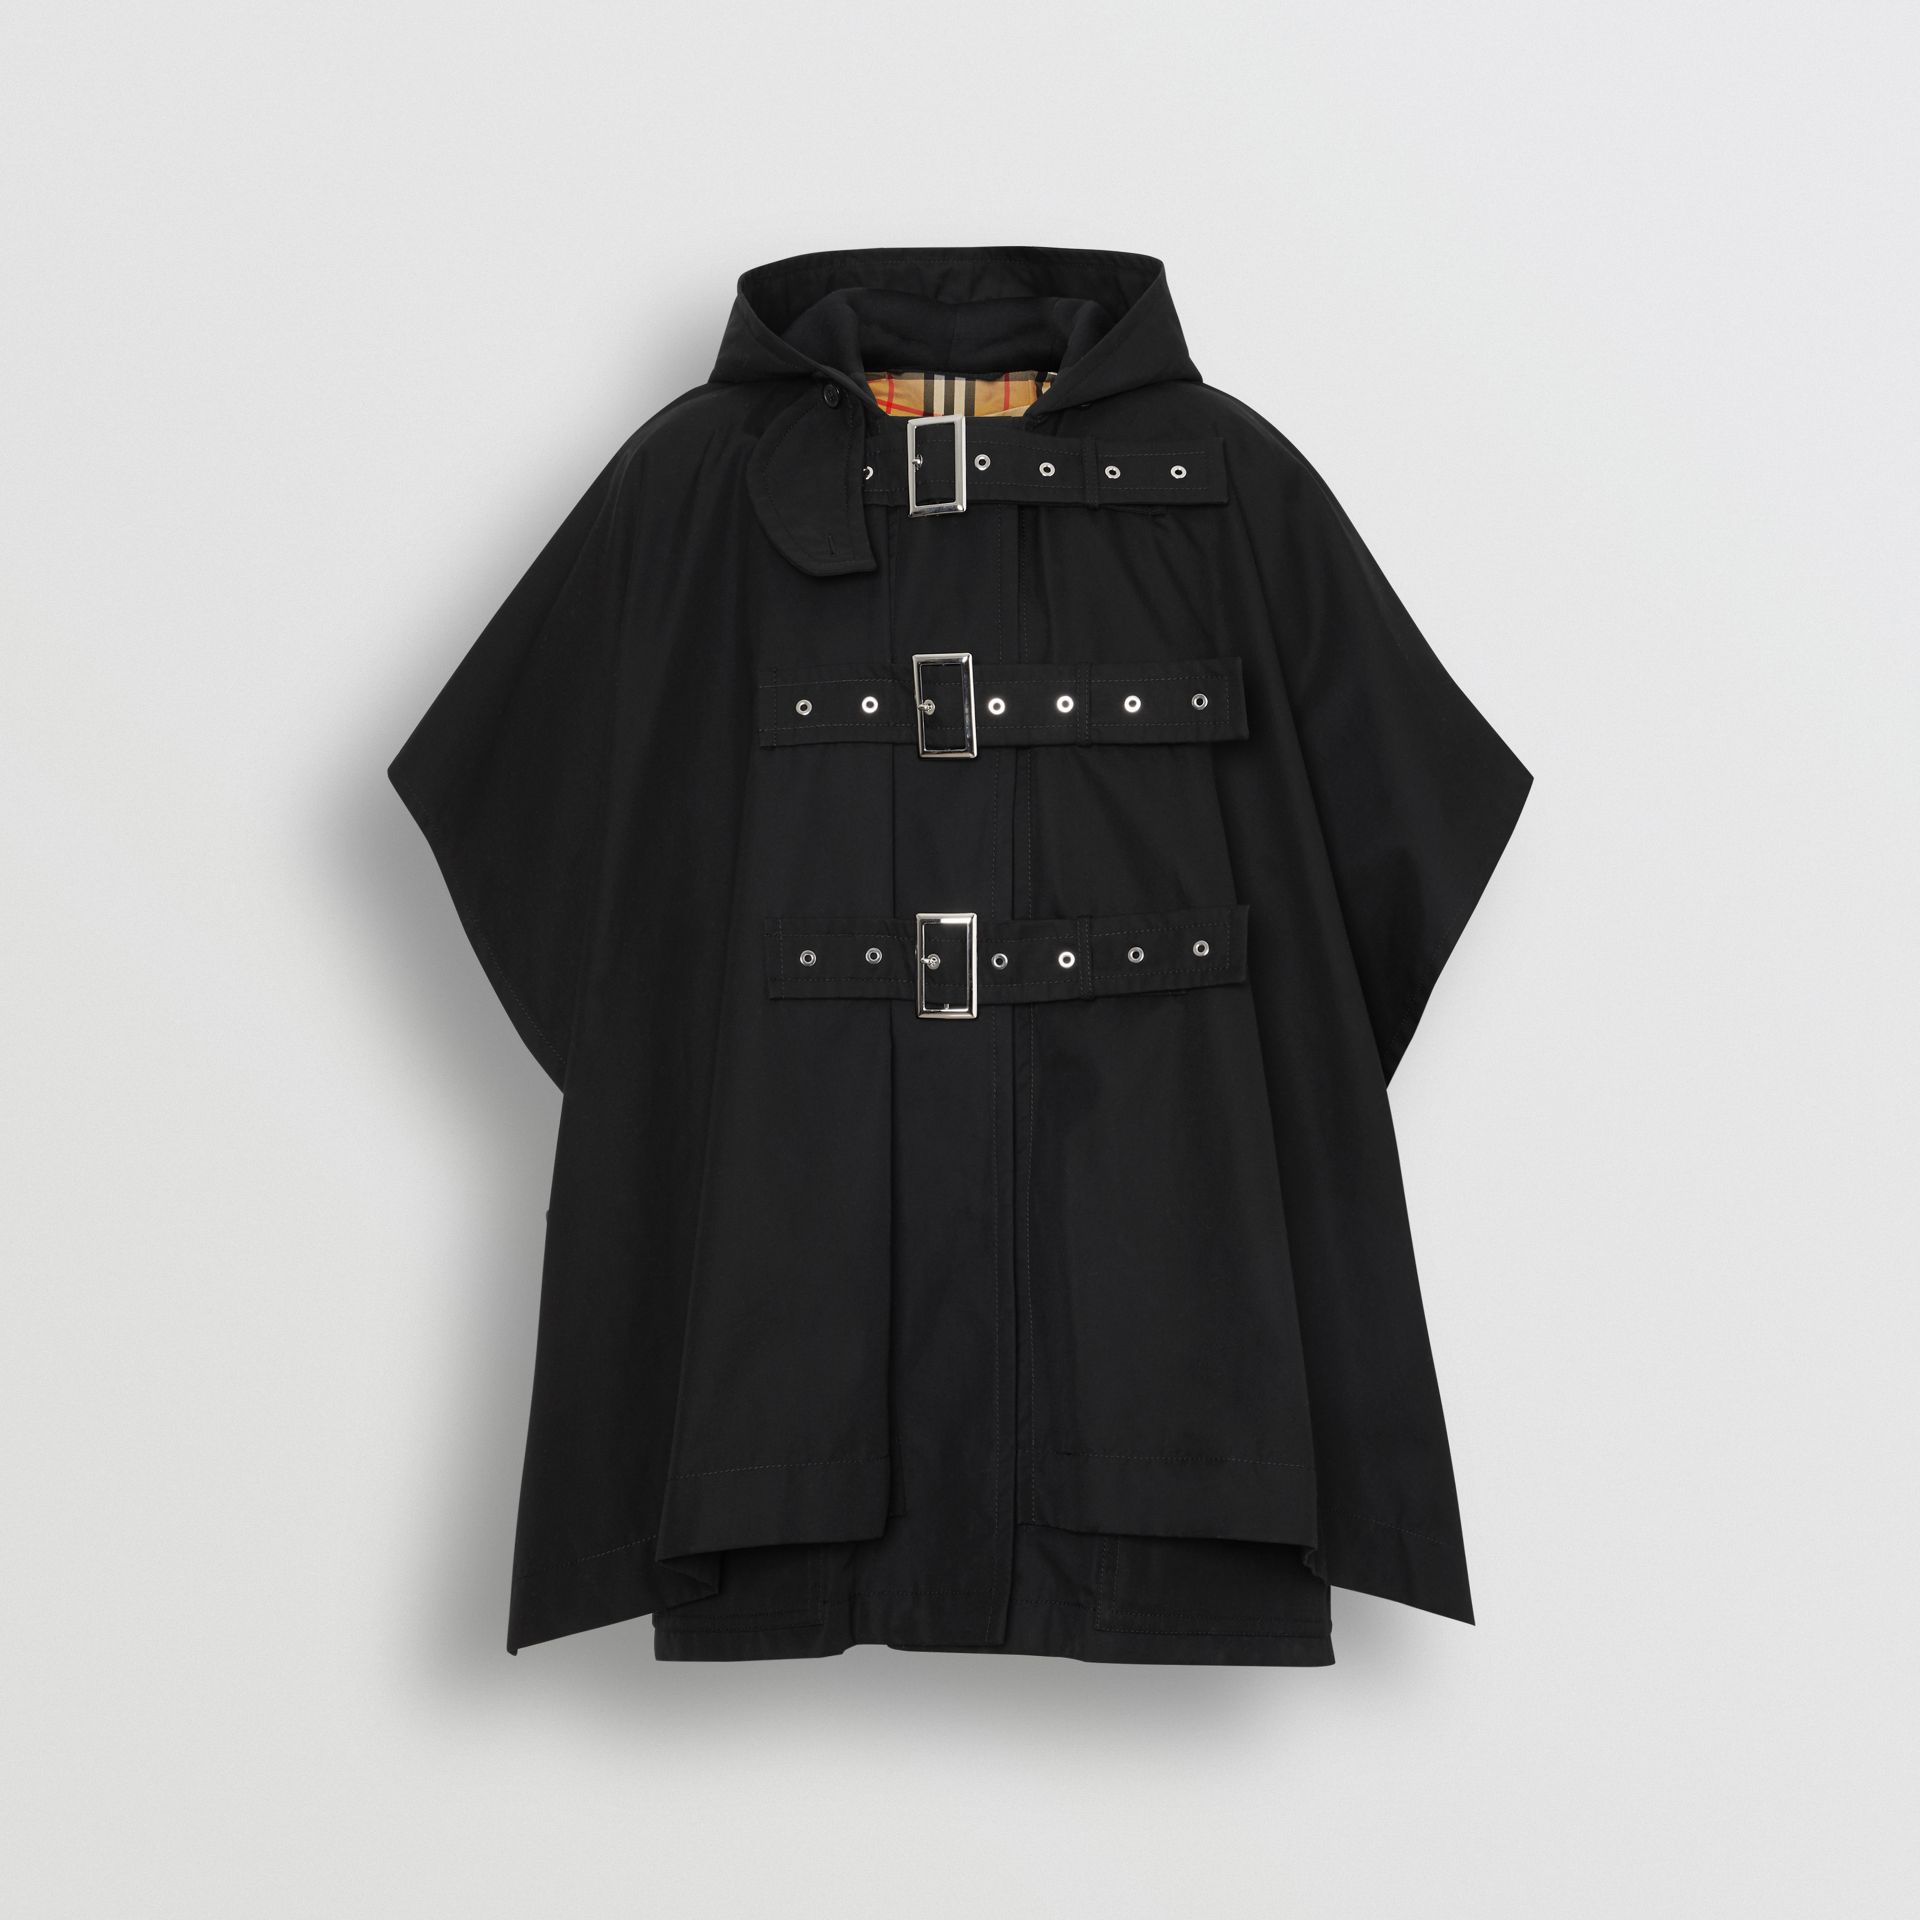 Triple Buckle Cotton Gabardine Cape Coat in Black - Women | Burberry United States - gallery image 3